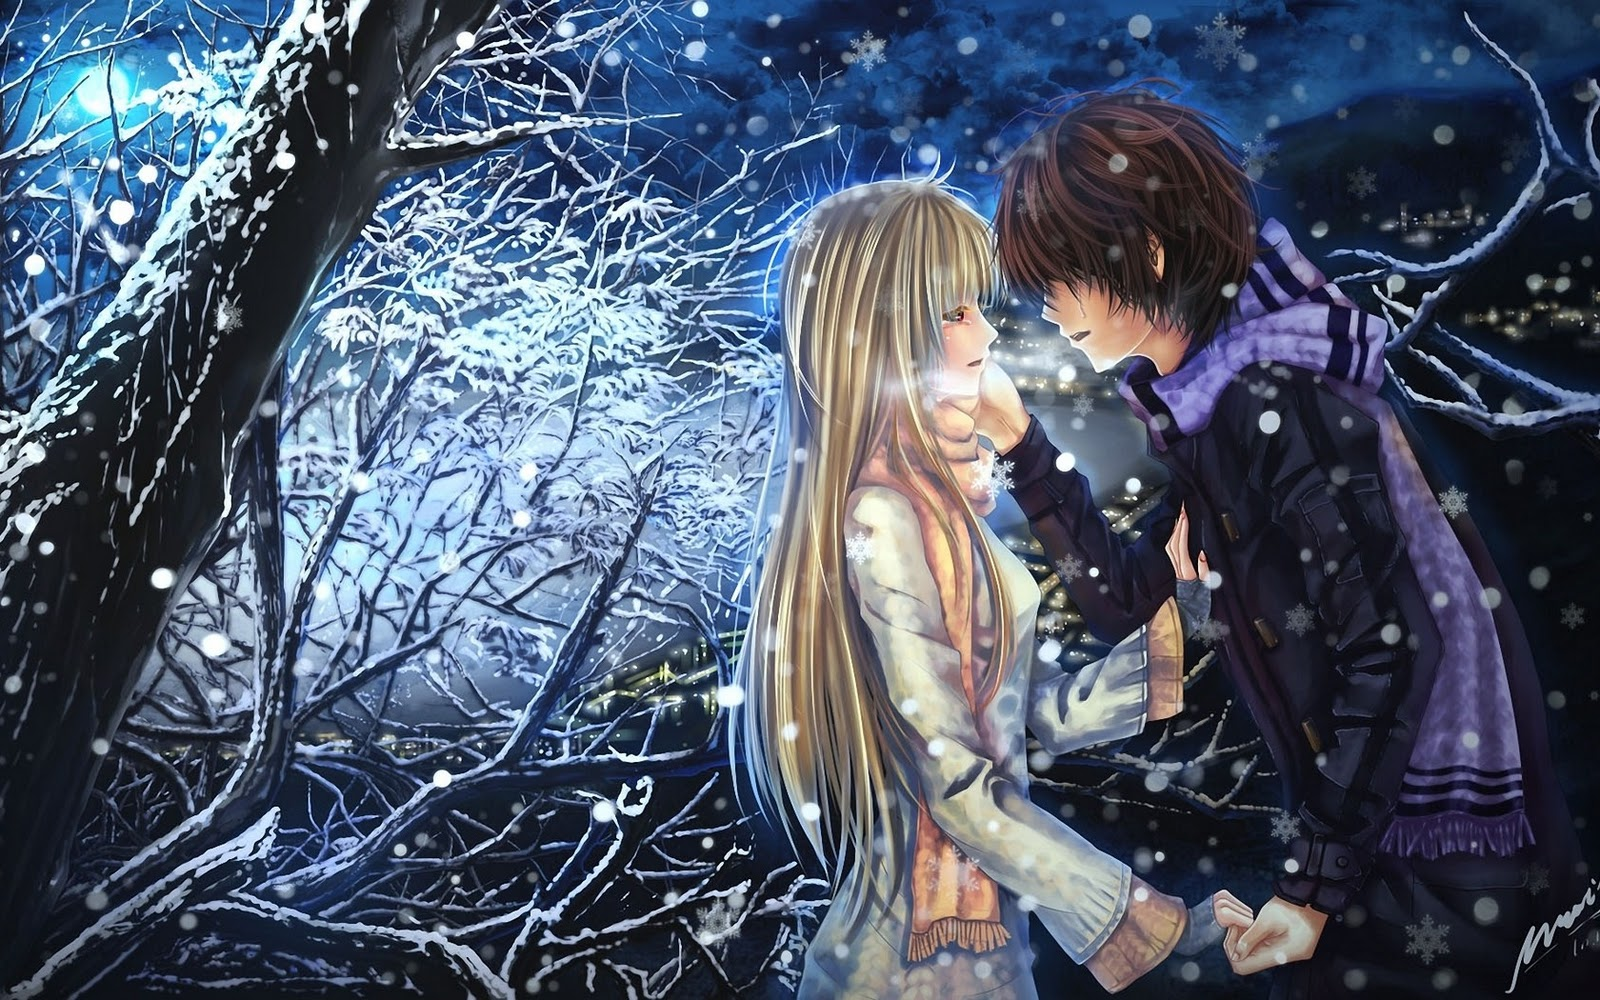 Wallpaper Of Love couple Hd : A2Z Wallpapers: Anime couples In Love Wallpapers